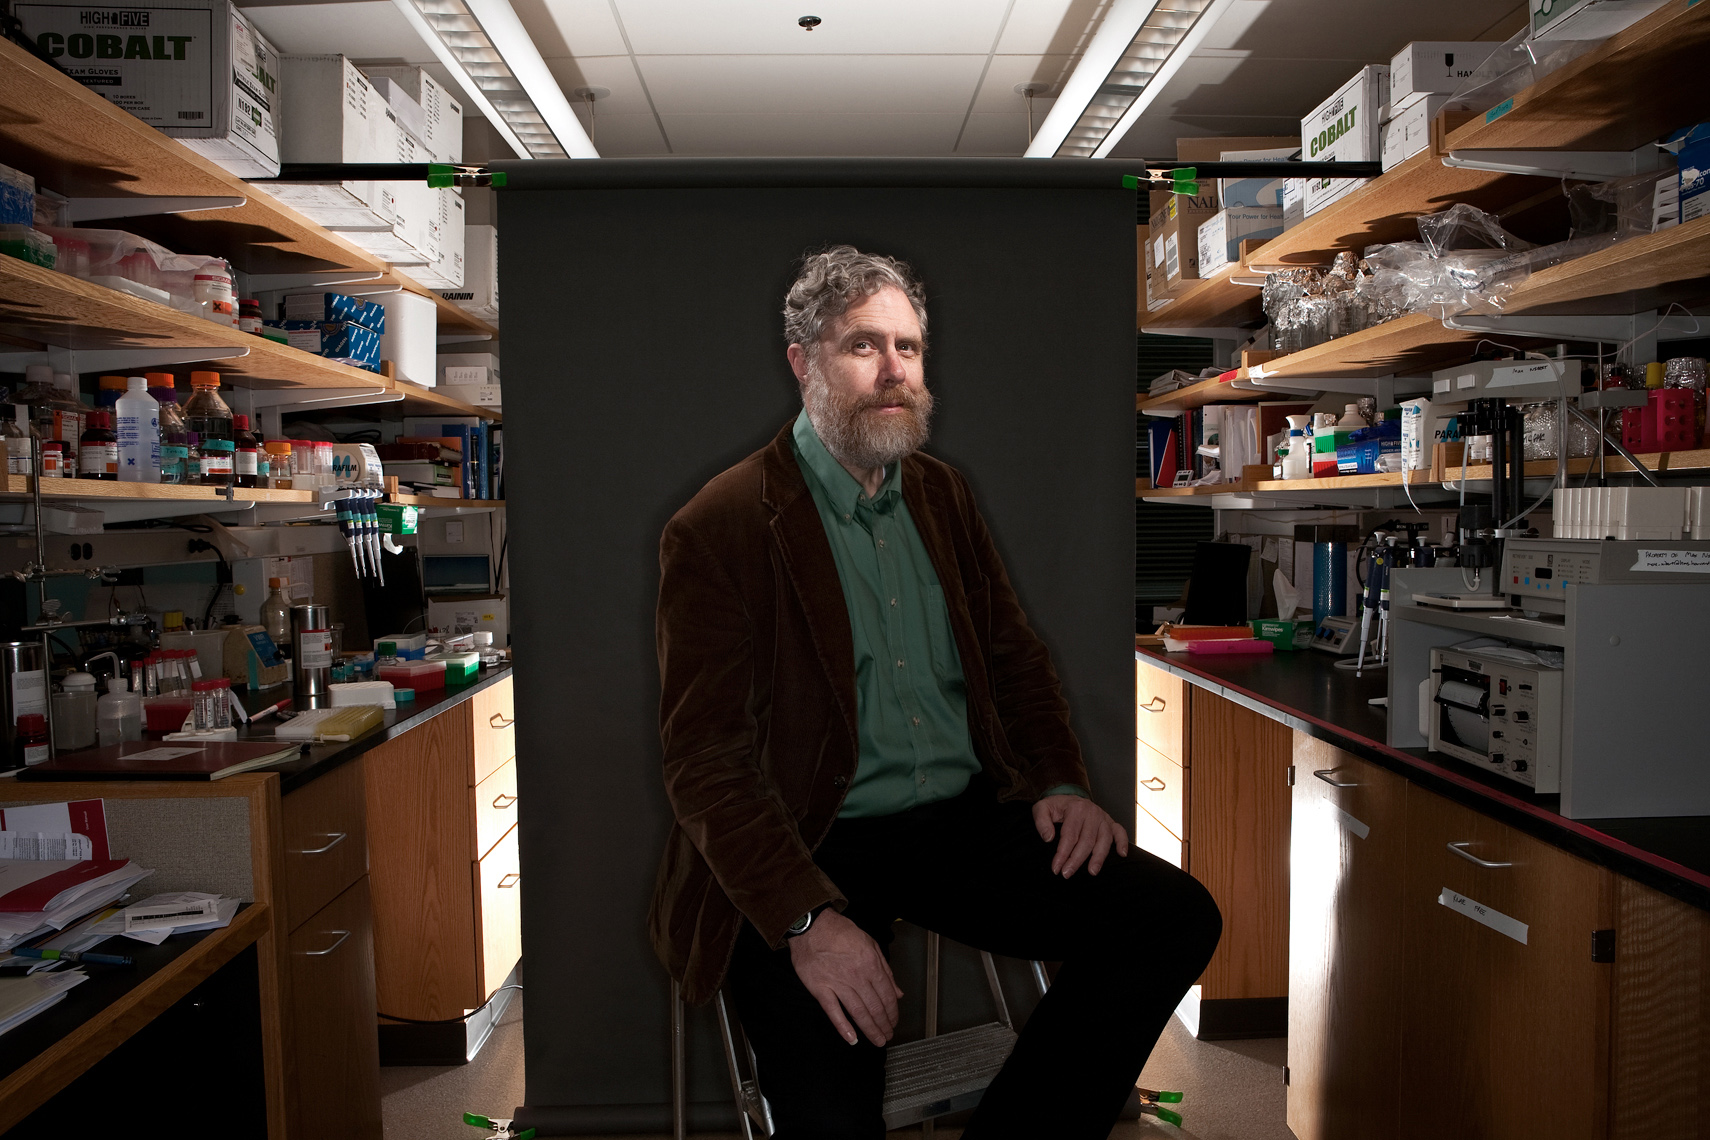 GEORGE CHURCH • HARVARD UNIVERSITY GENETICIST